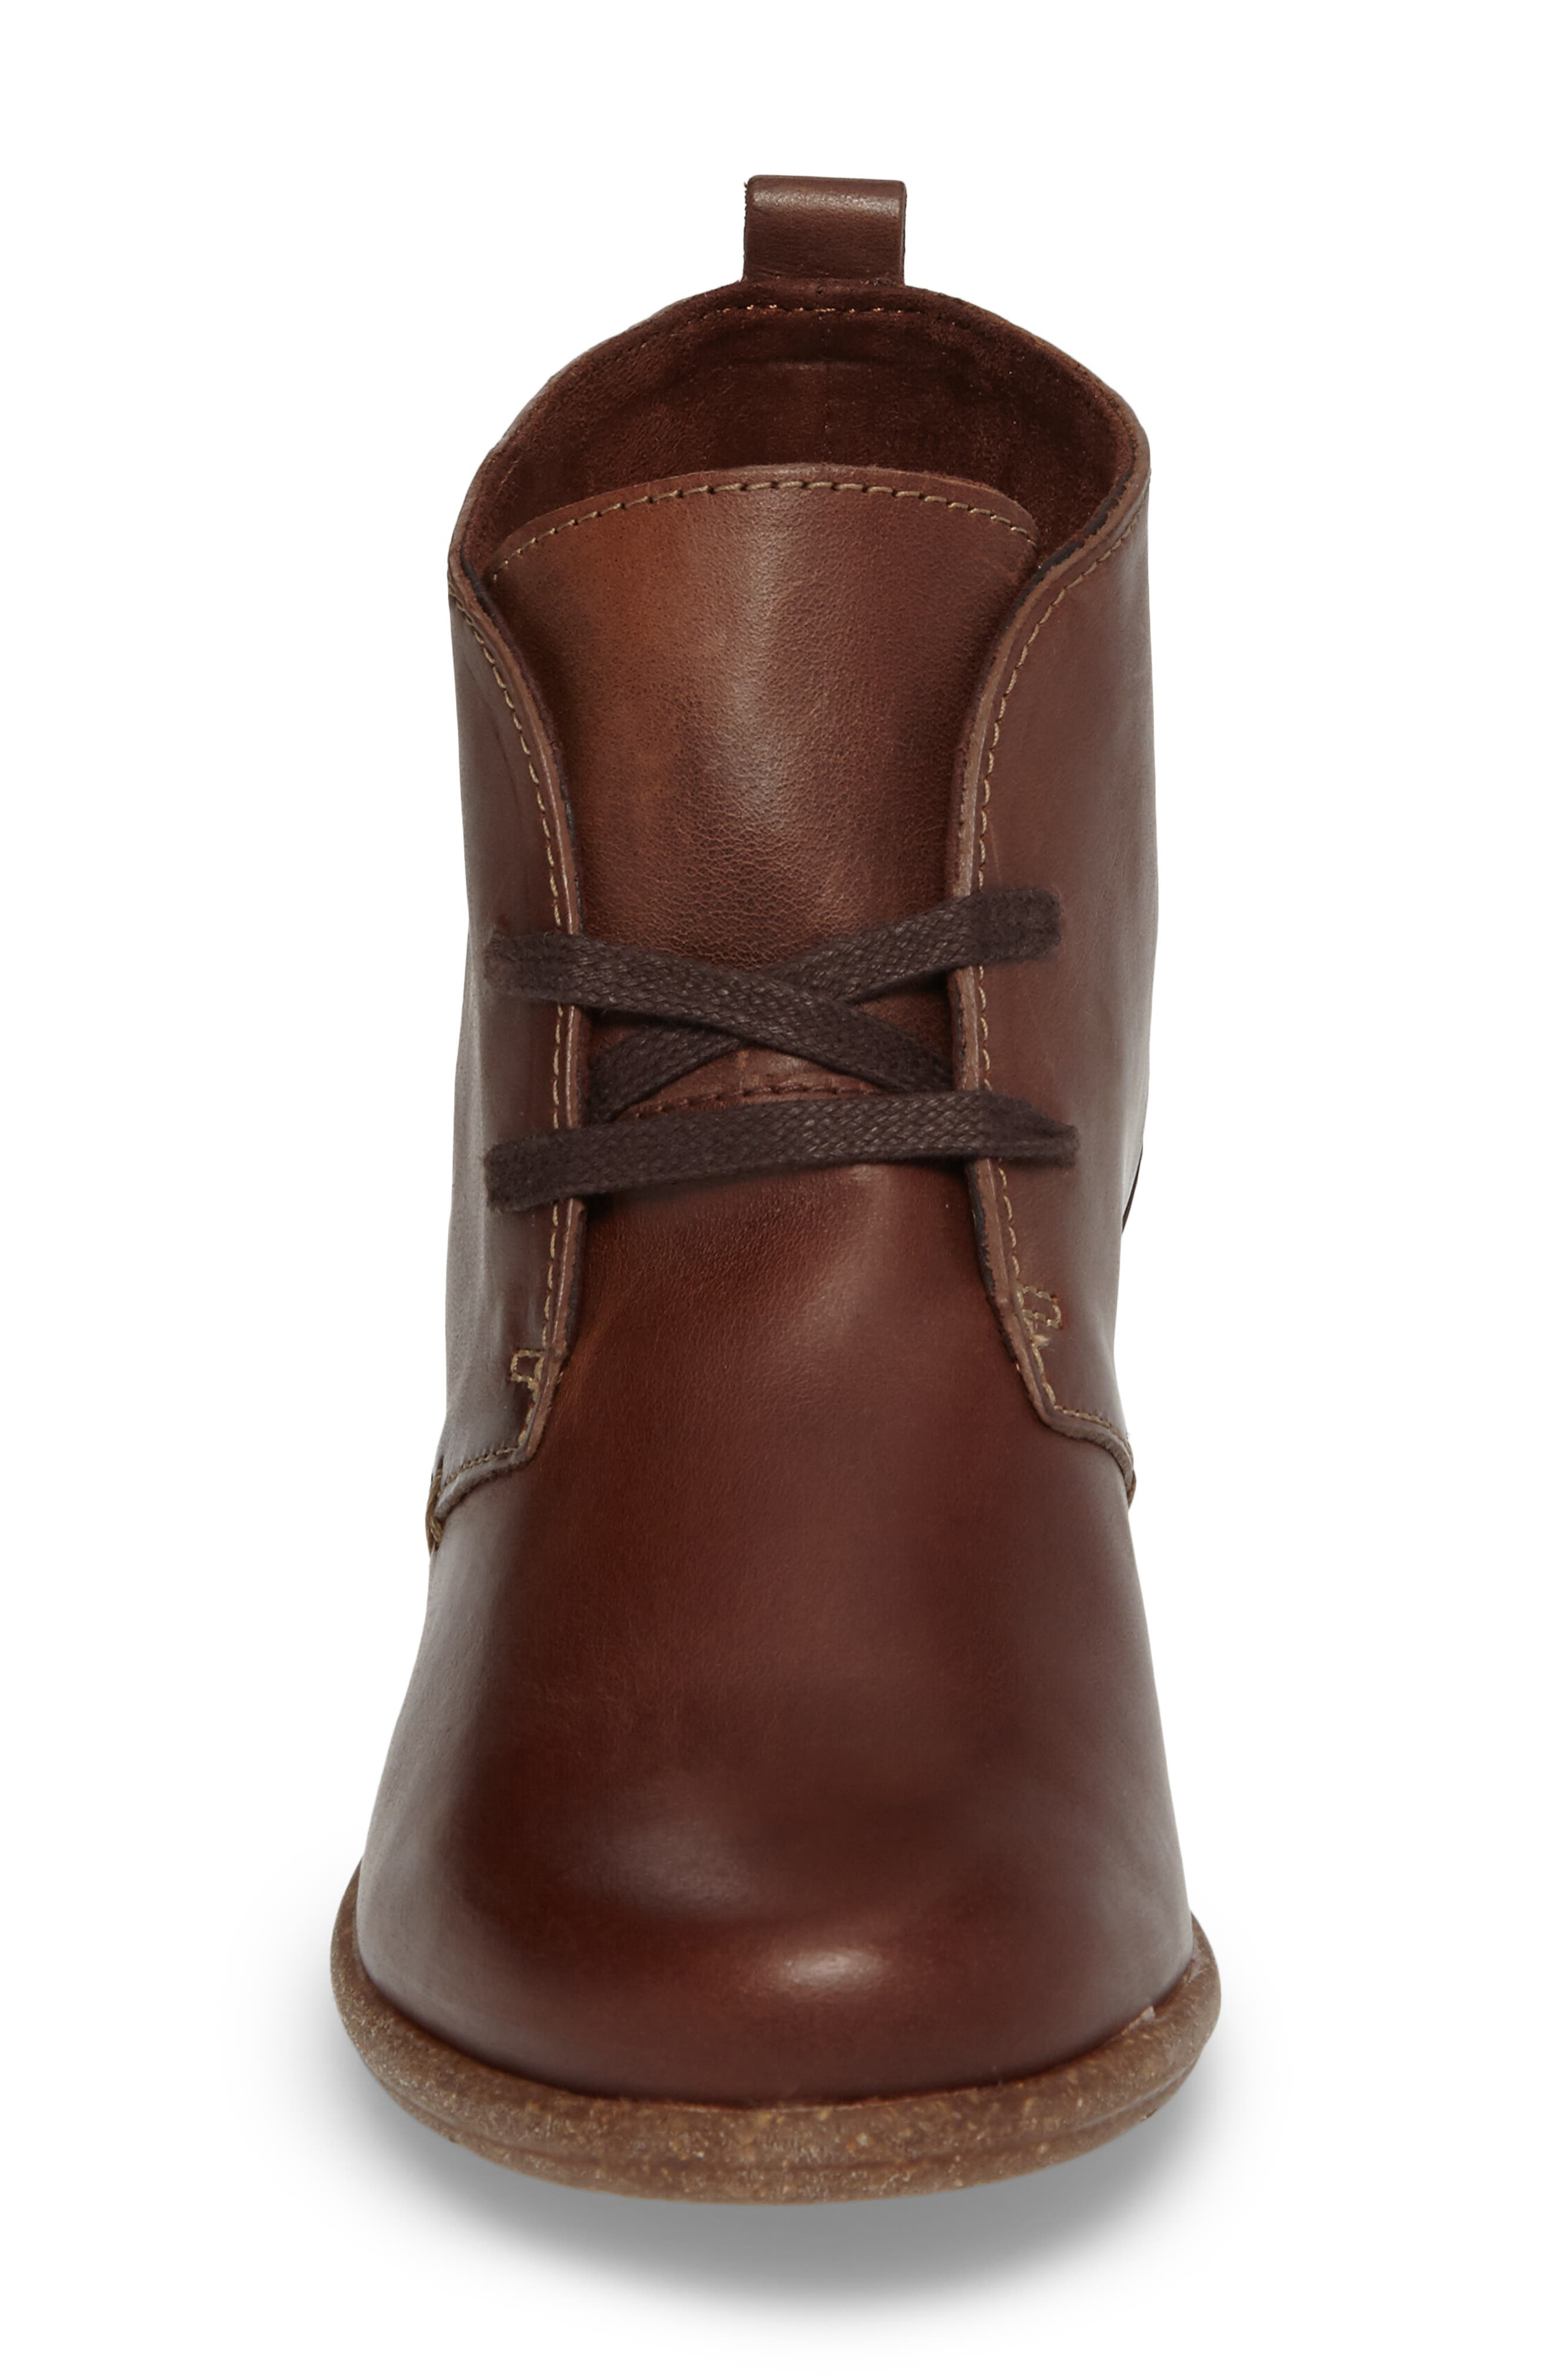 Wilrose Sage Bootie,                             Alternate thumbnail 4, color,                             Brown Nubuck Leather